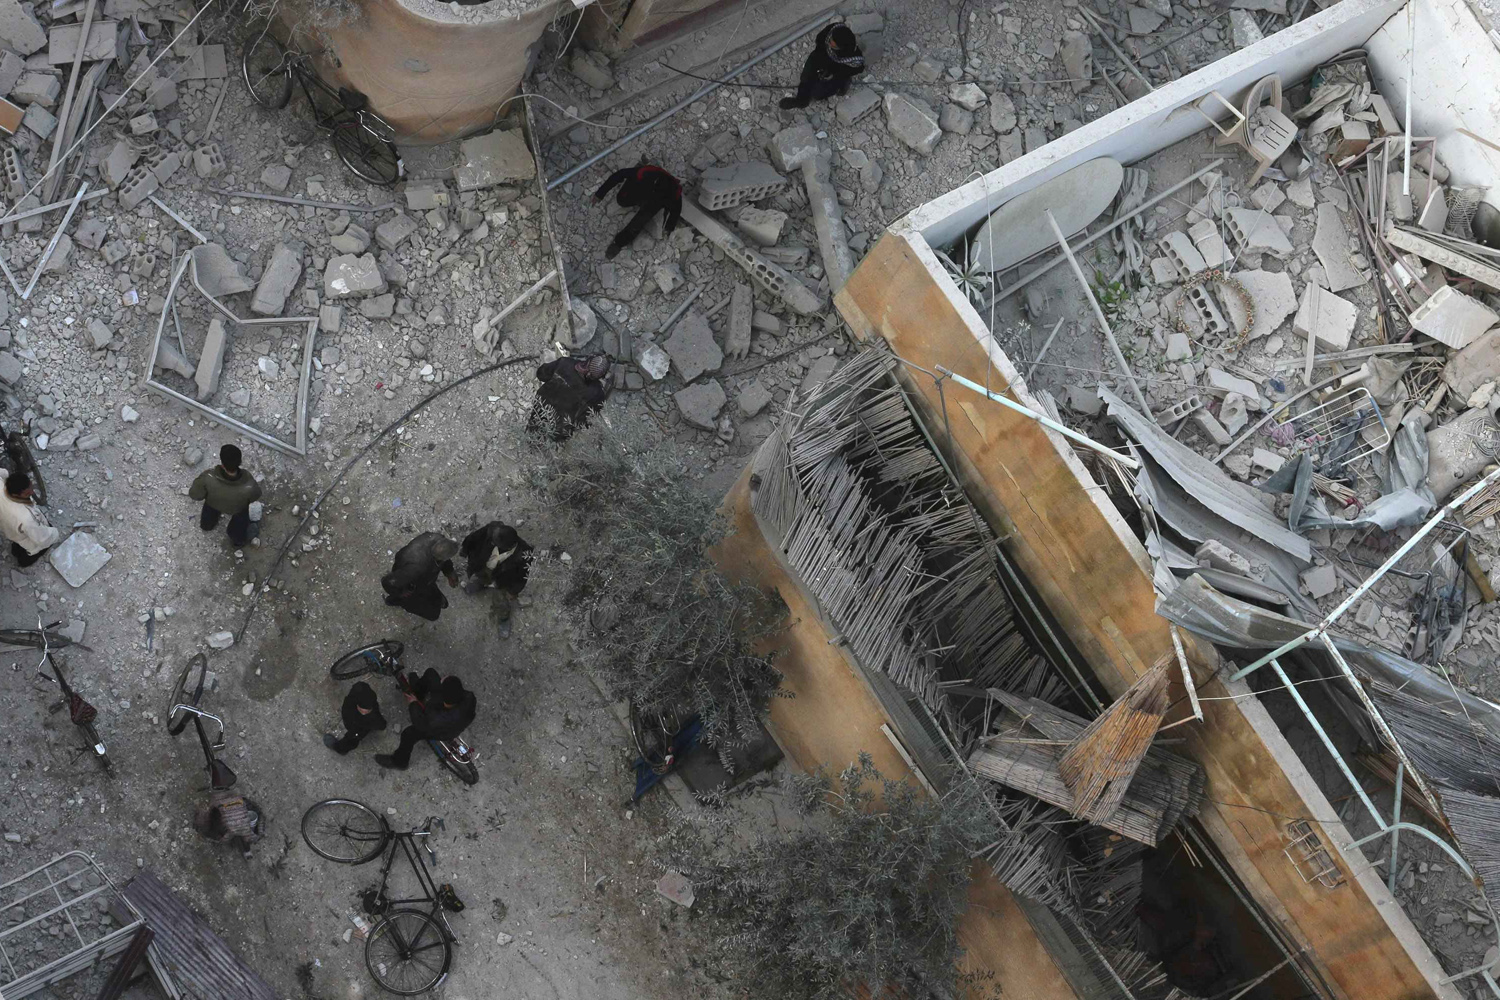 Jan. 7, 2014. People inspect a site hit by what activists said was an airstrike by forces loyal to Syrian President Bashar al-Assad in the Duma neighborhood of Damascus.